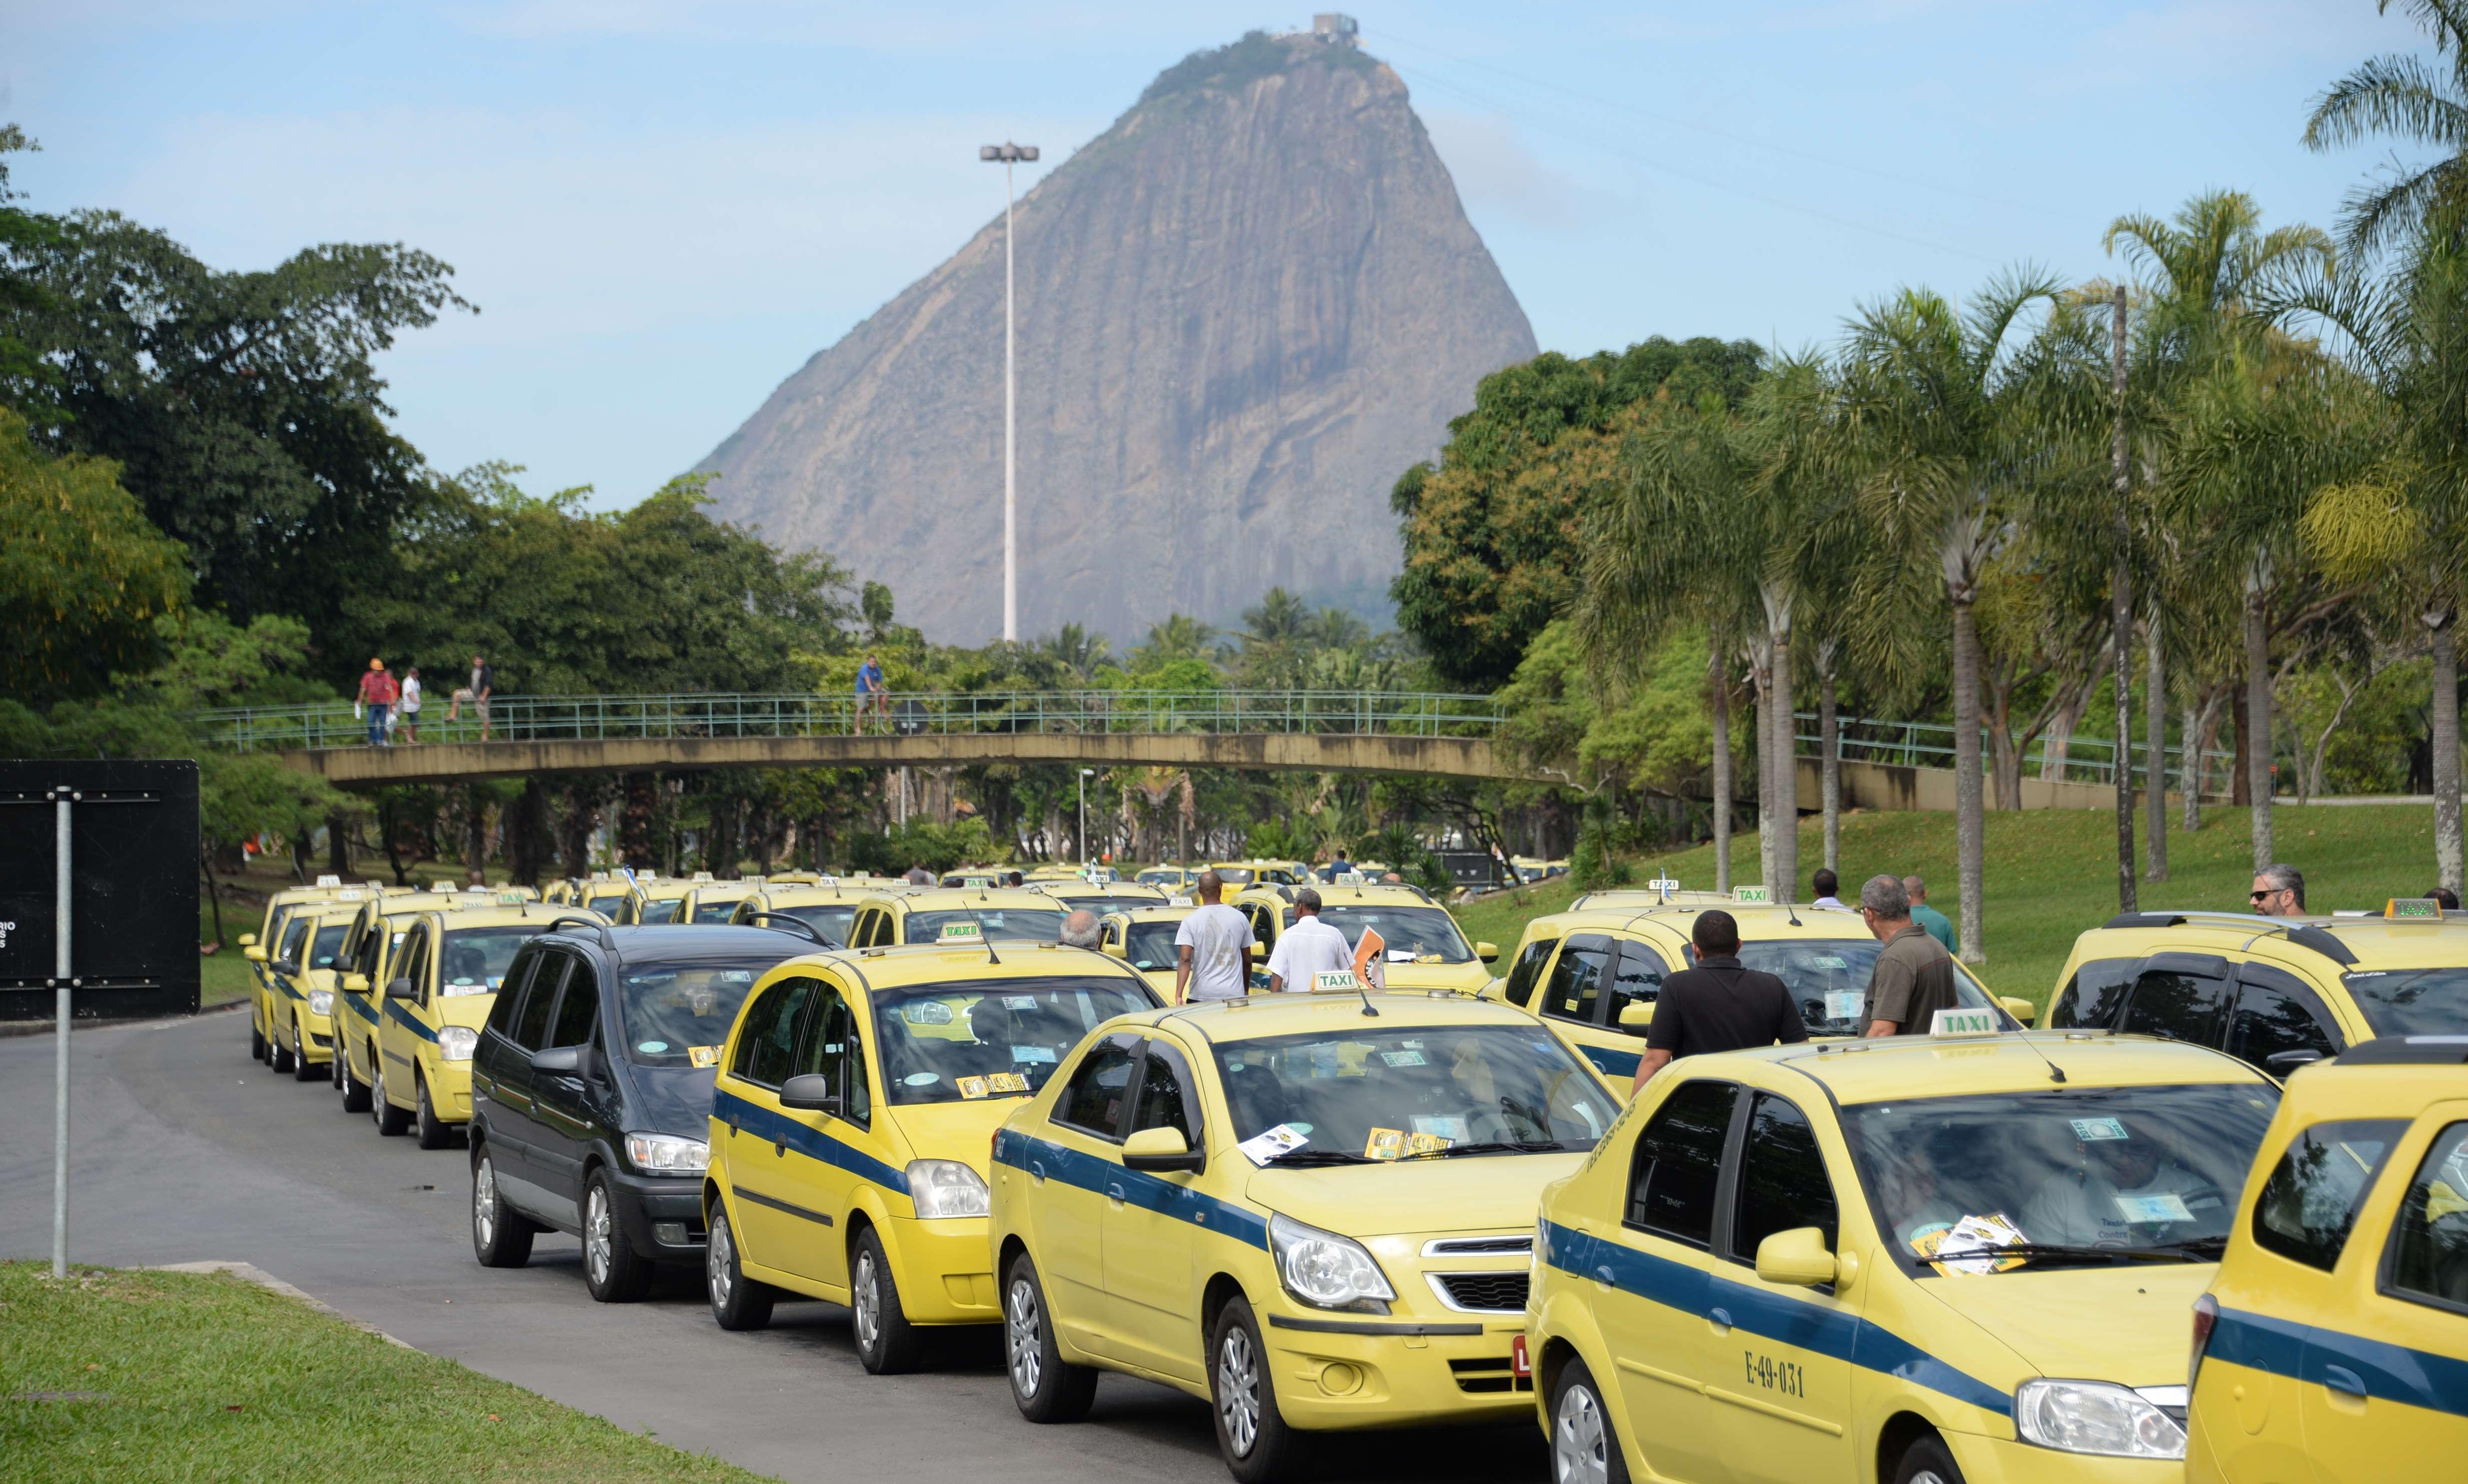 Over a thousand Rio taxi drivers block main city route to protest Uber